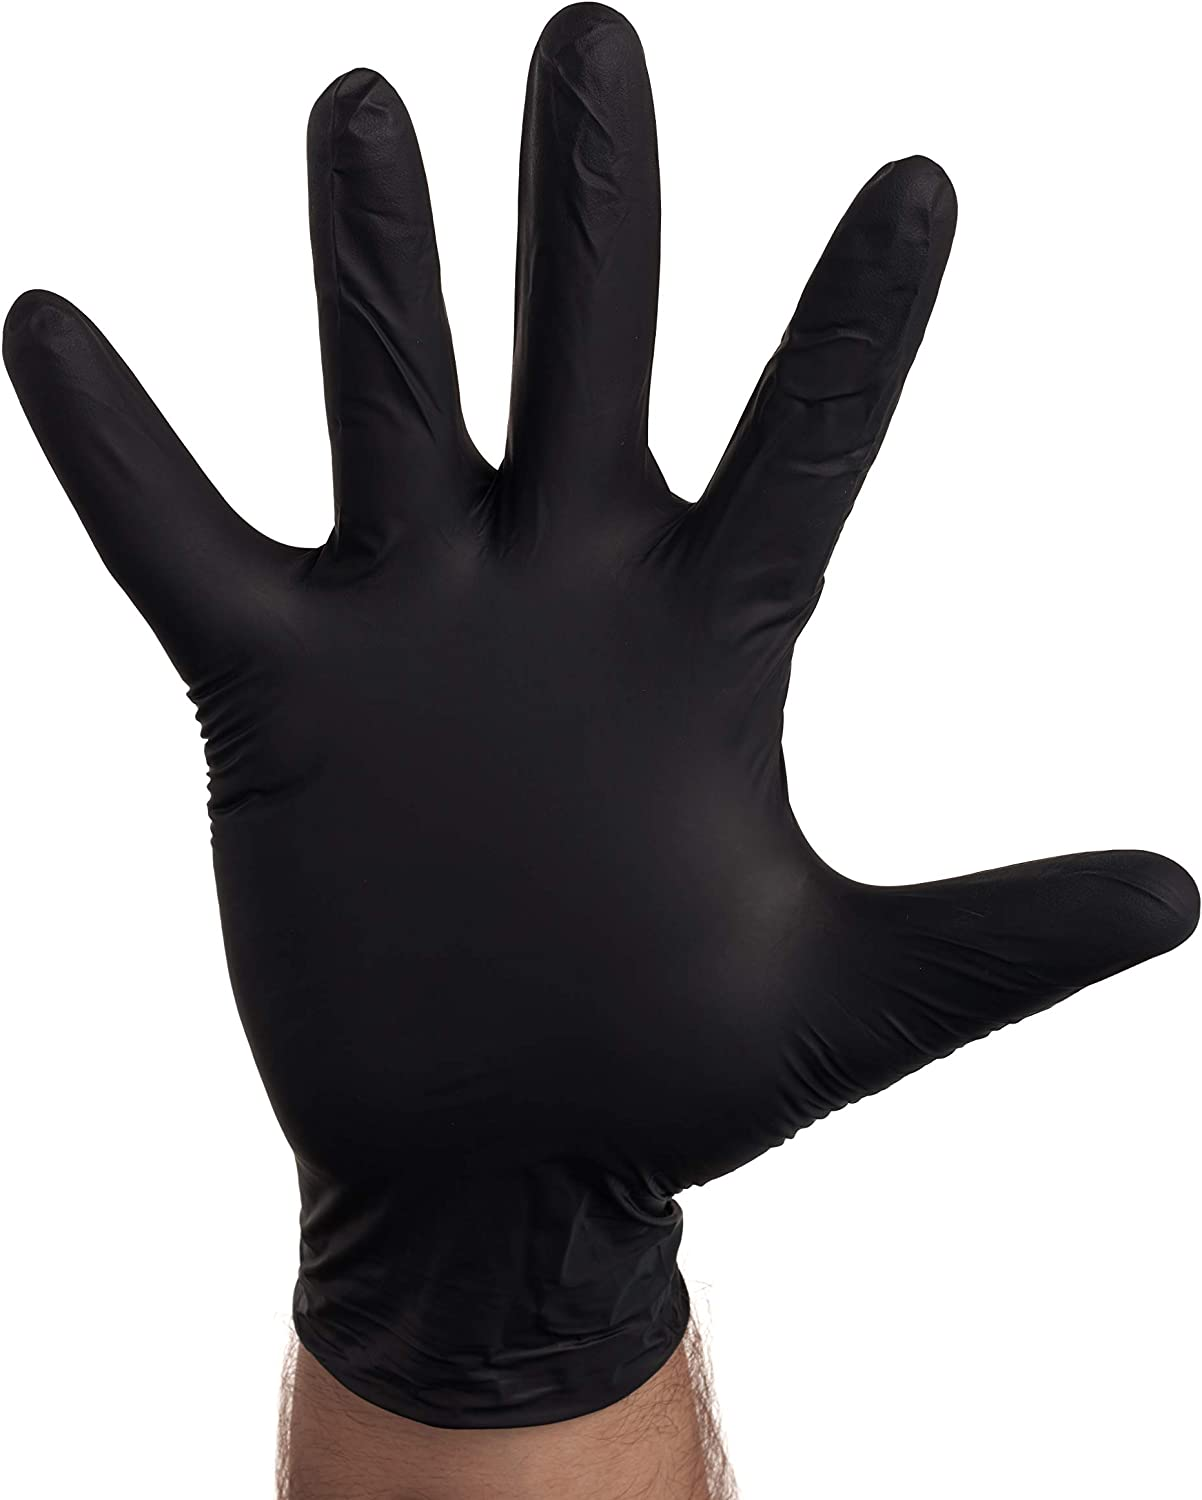 100 PACK Large Special price Black Our shop most popular Nitrile Exam Disposable R Latex - Gloves